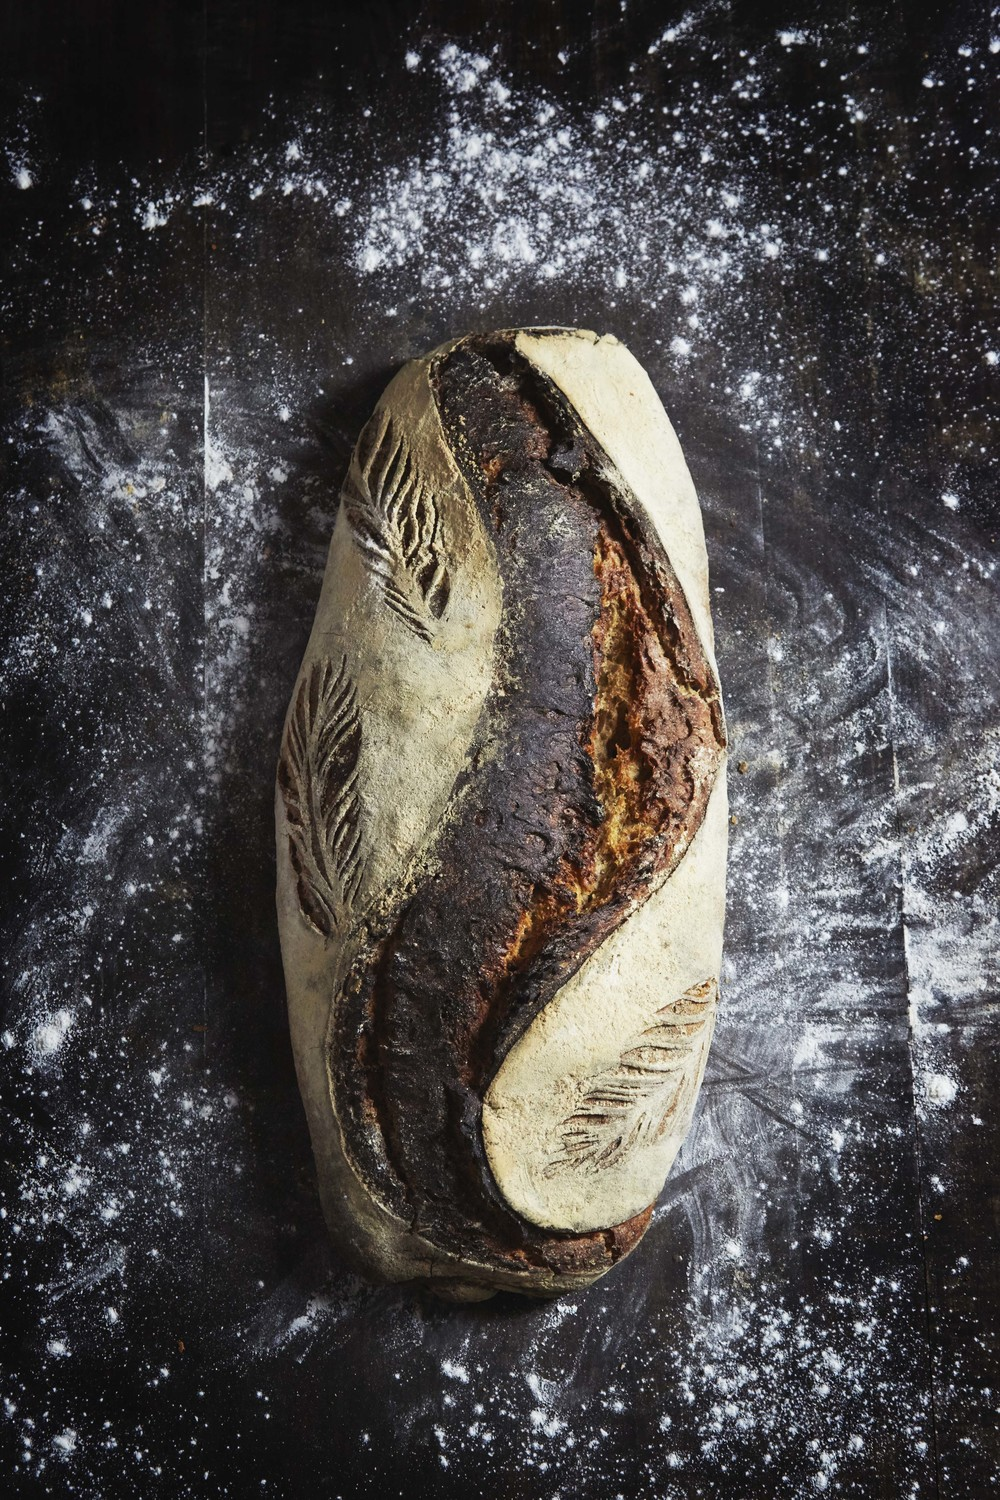 Kegel bread from Handwerk, editorial for Matmagasinet NORD.